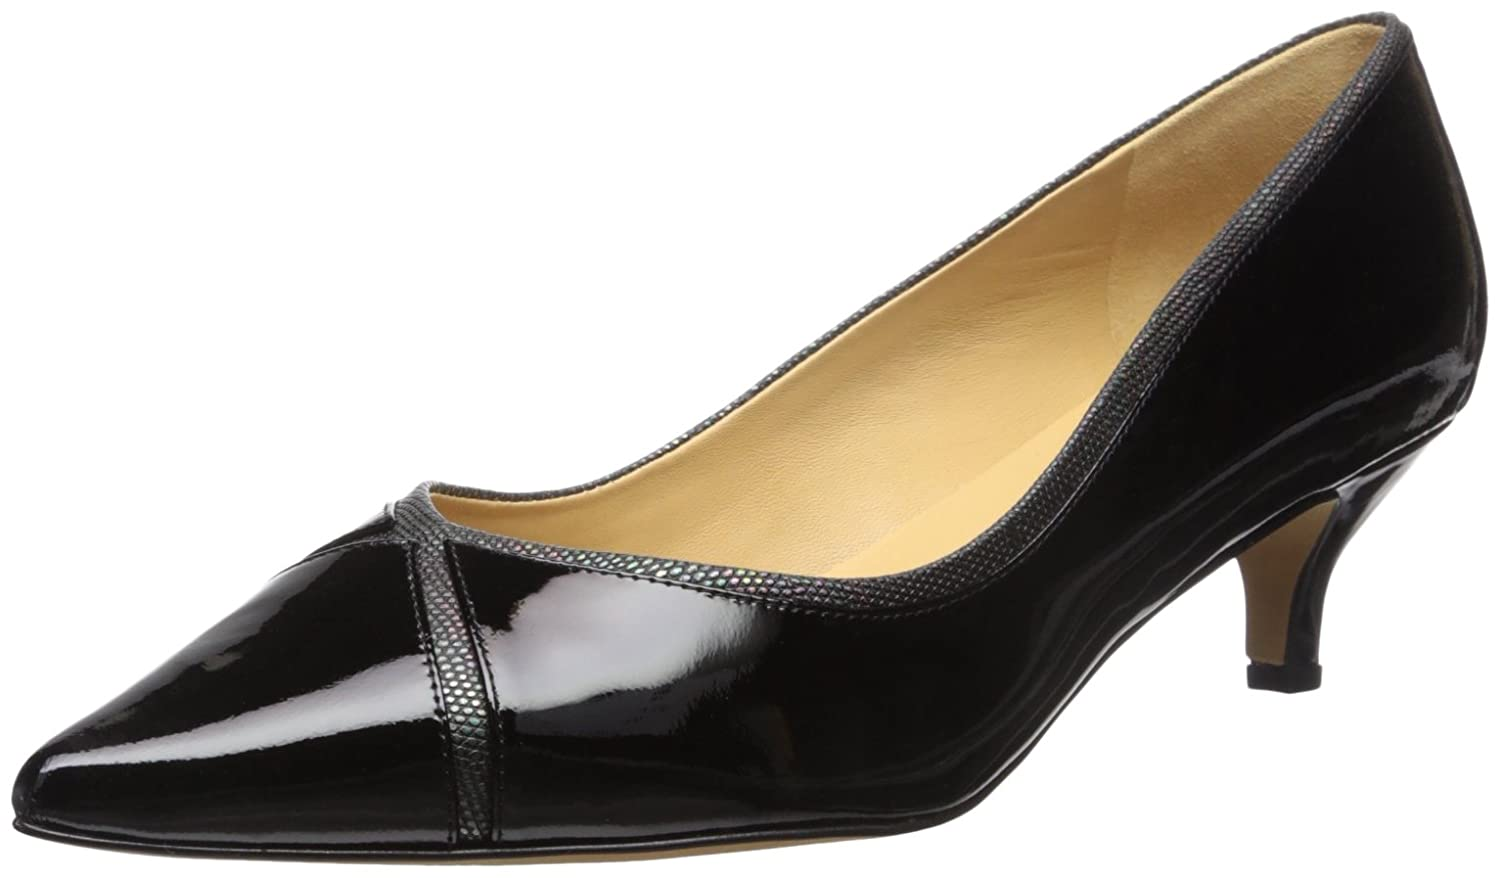 Trotters Women's Kelsey Dress Pump B019R21QPY 6.5 B(M) US|Black Combo